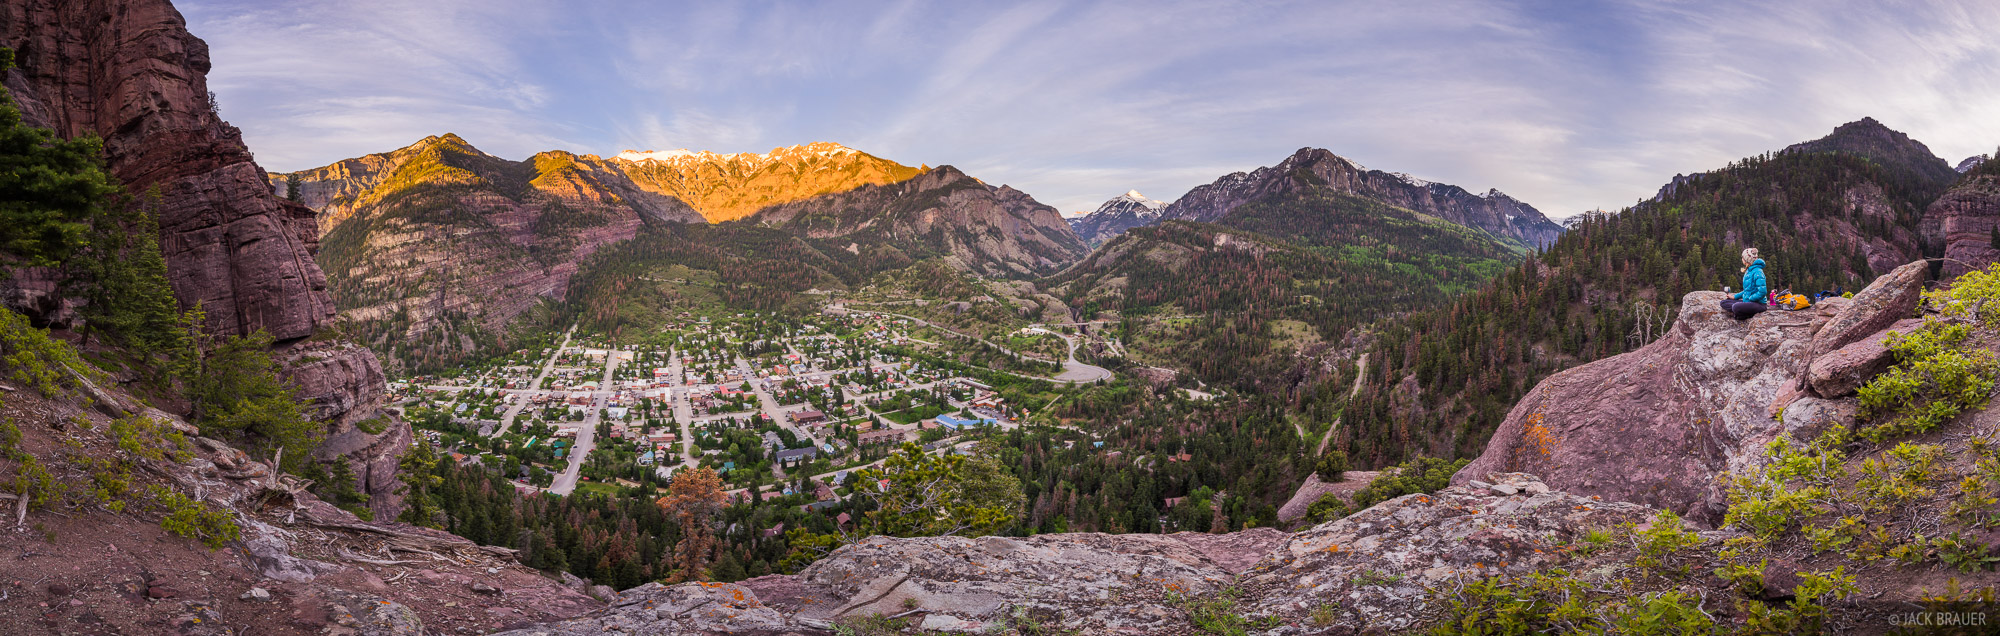 Ouray, San Juan Mountains, Colorado, panorama, June